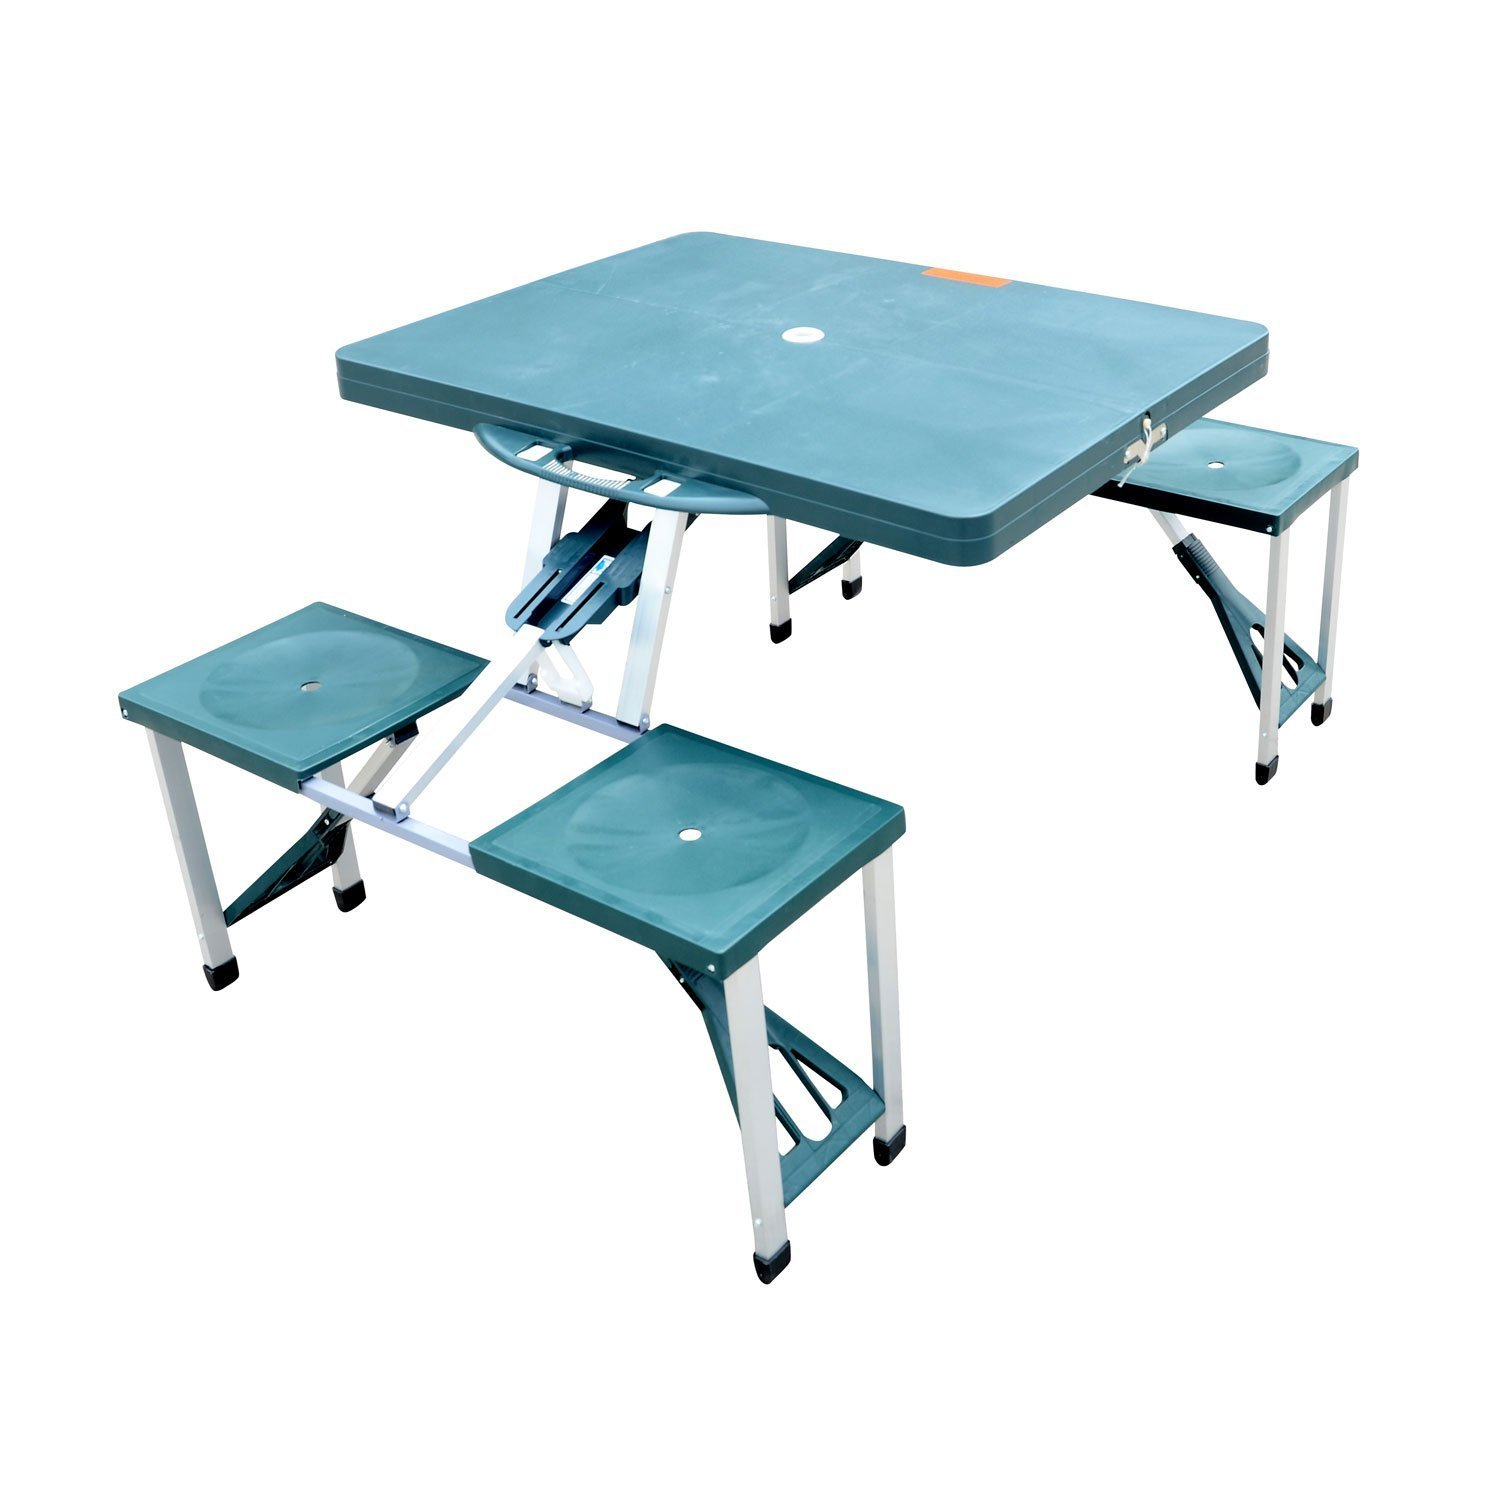 Amazon.com  Outsunny Portable Lightweight Folding Suitcase Picnic Table w/4 Built-In Chairs Green  Garden u0026 Outdoor  sc 1 st  Amazon.com : folding table set of 4 - pezcame.com